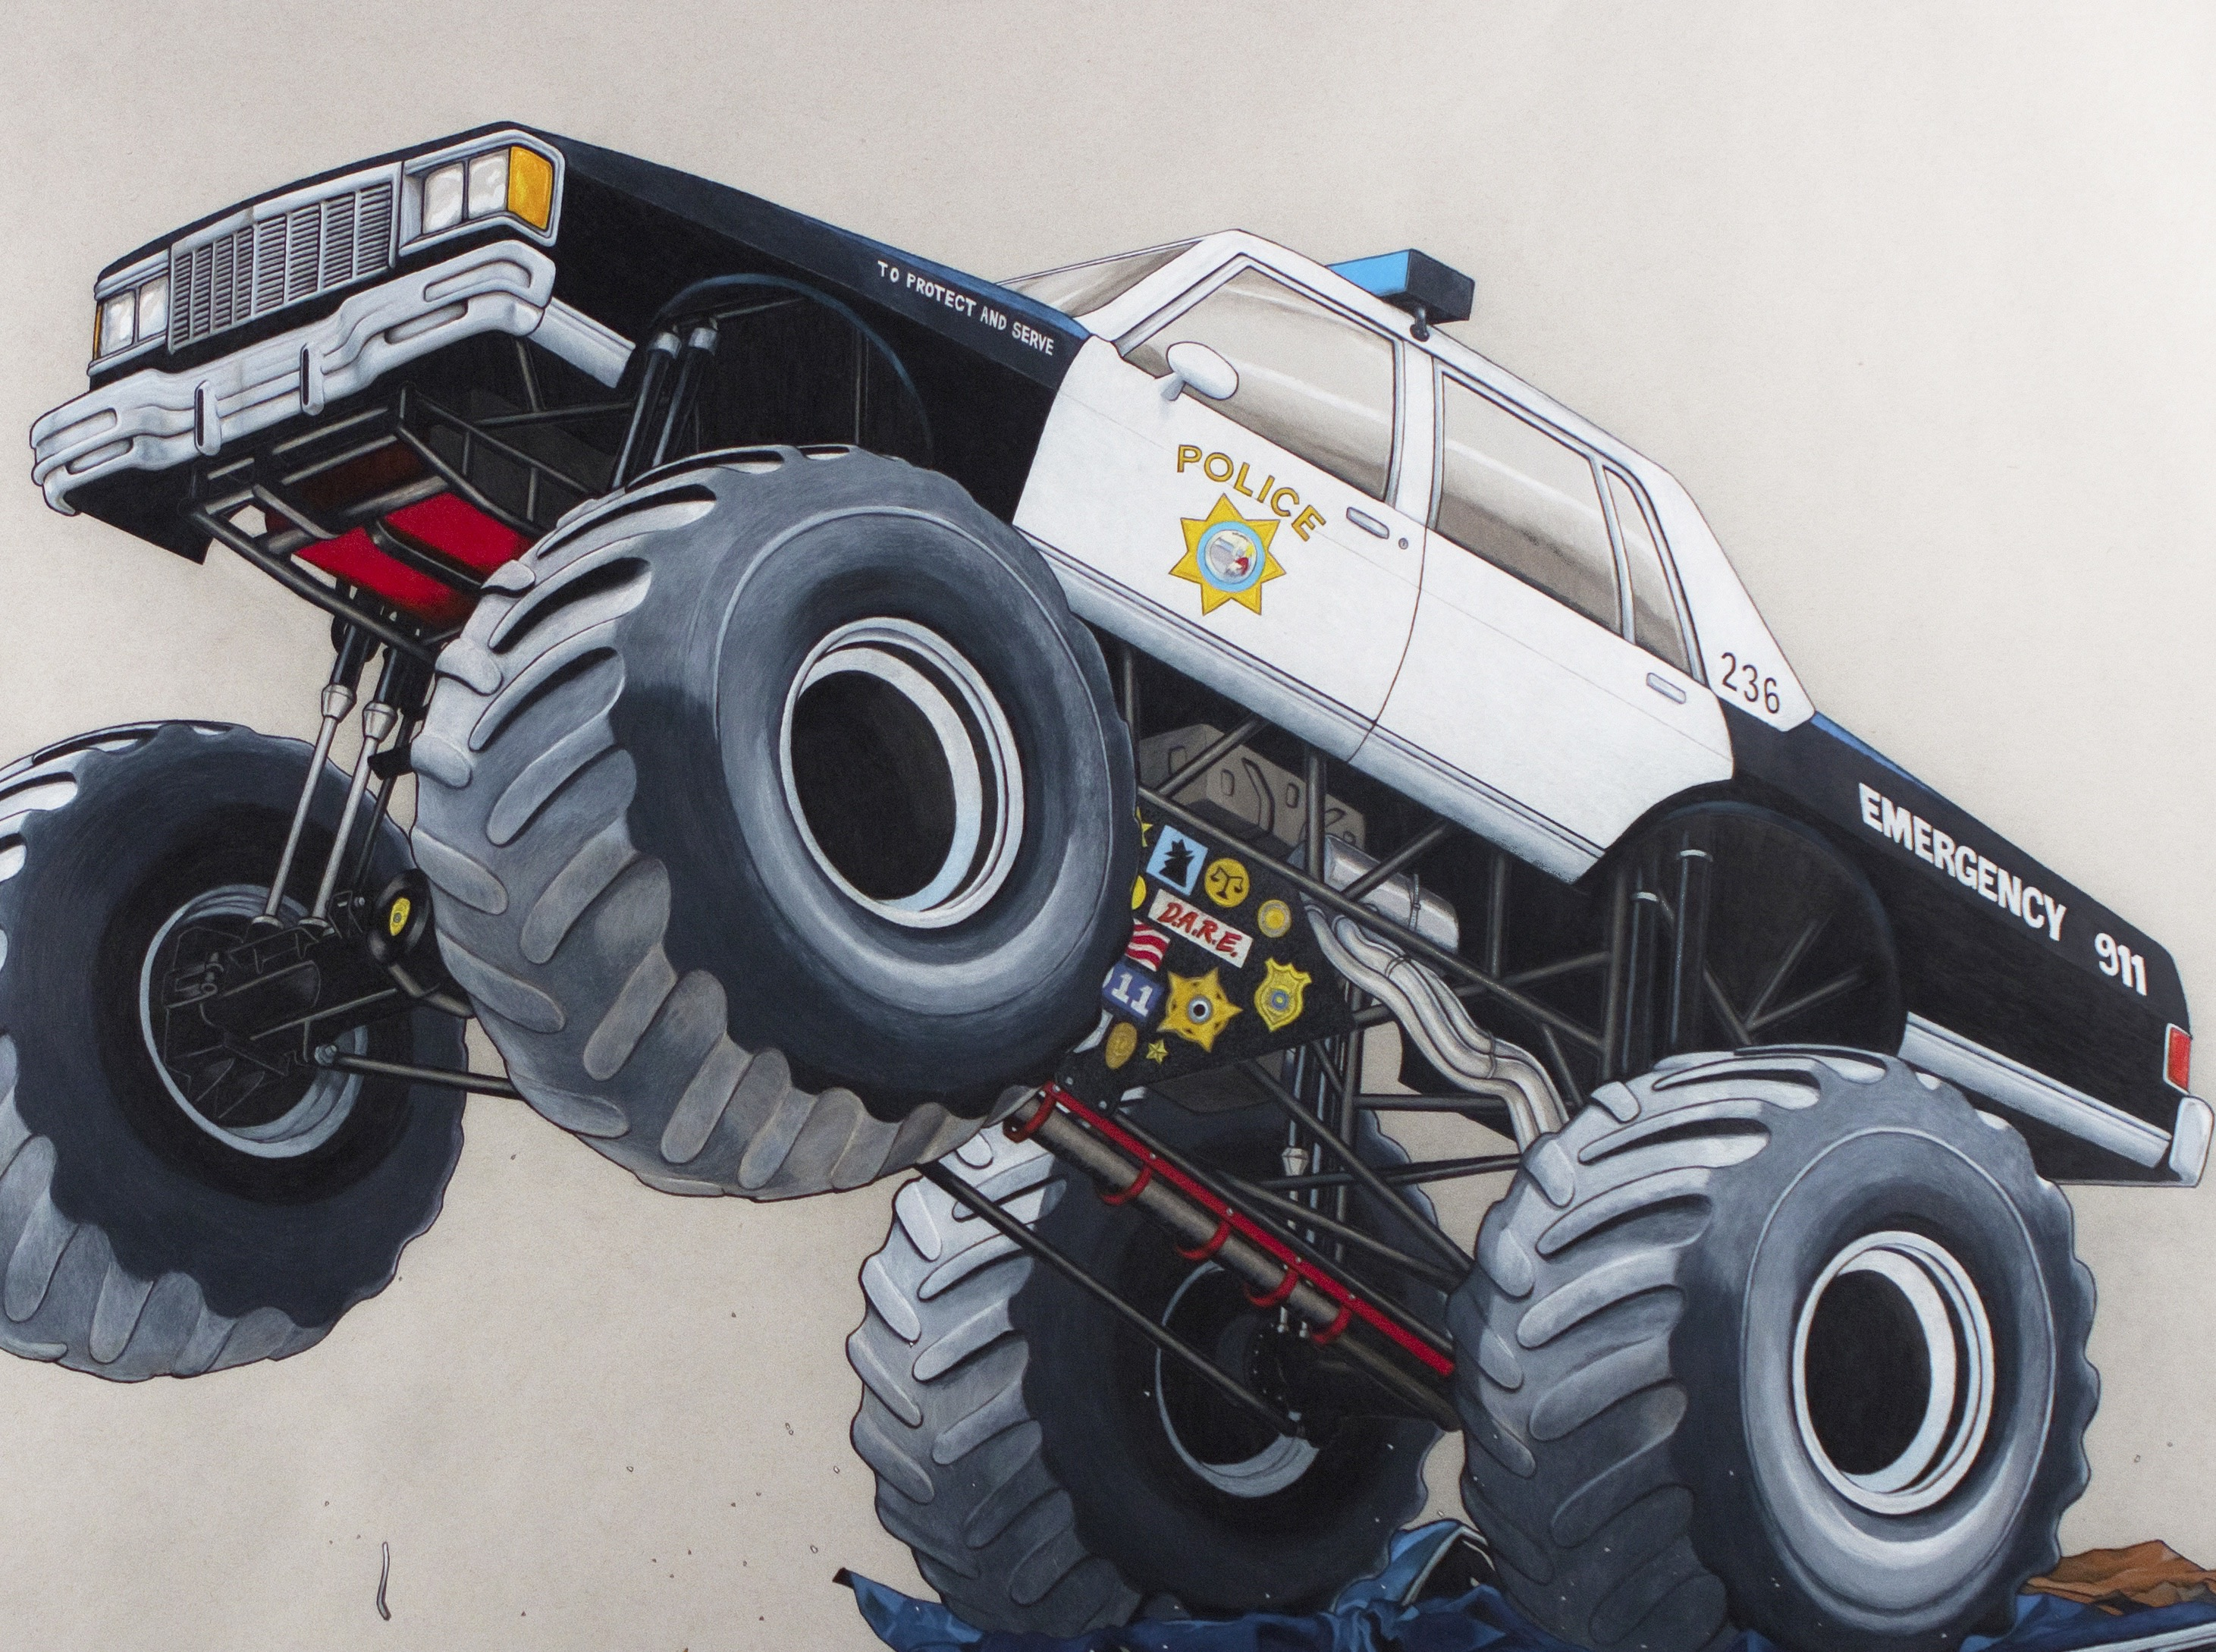 """Routine Patrol by Russ White as part of """"Macro Machines"""" at Gamut Gallery from April 2-23."""